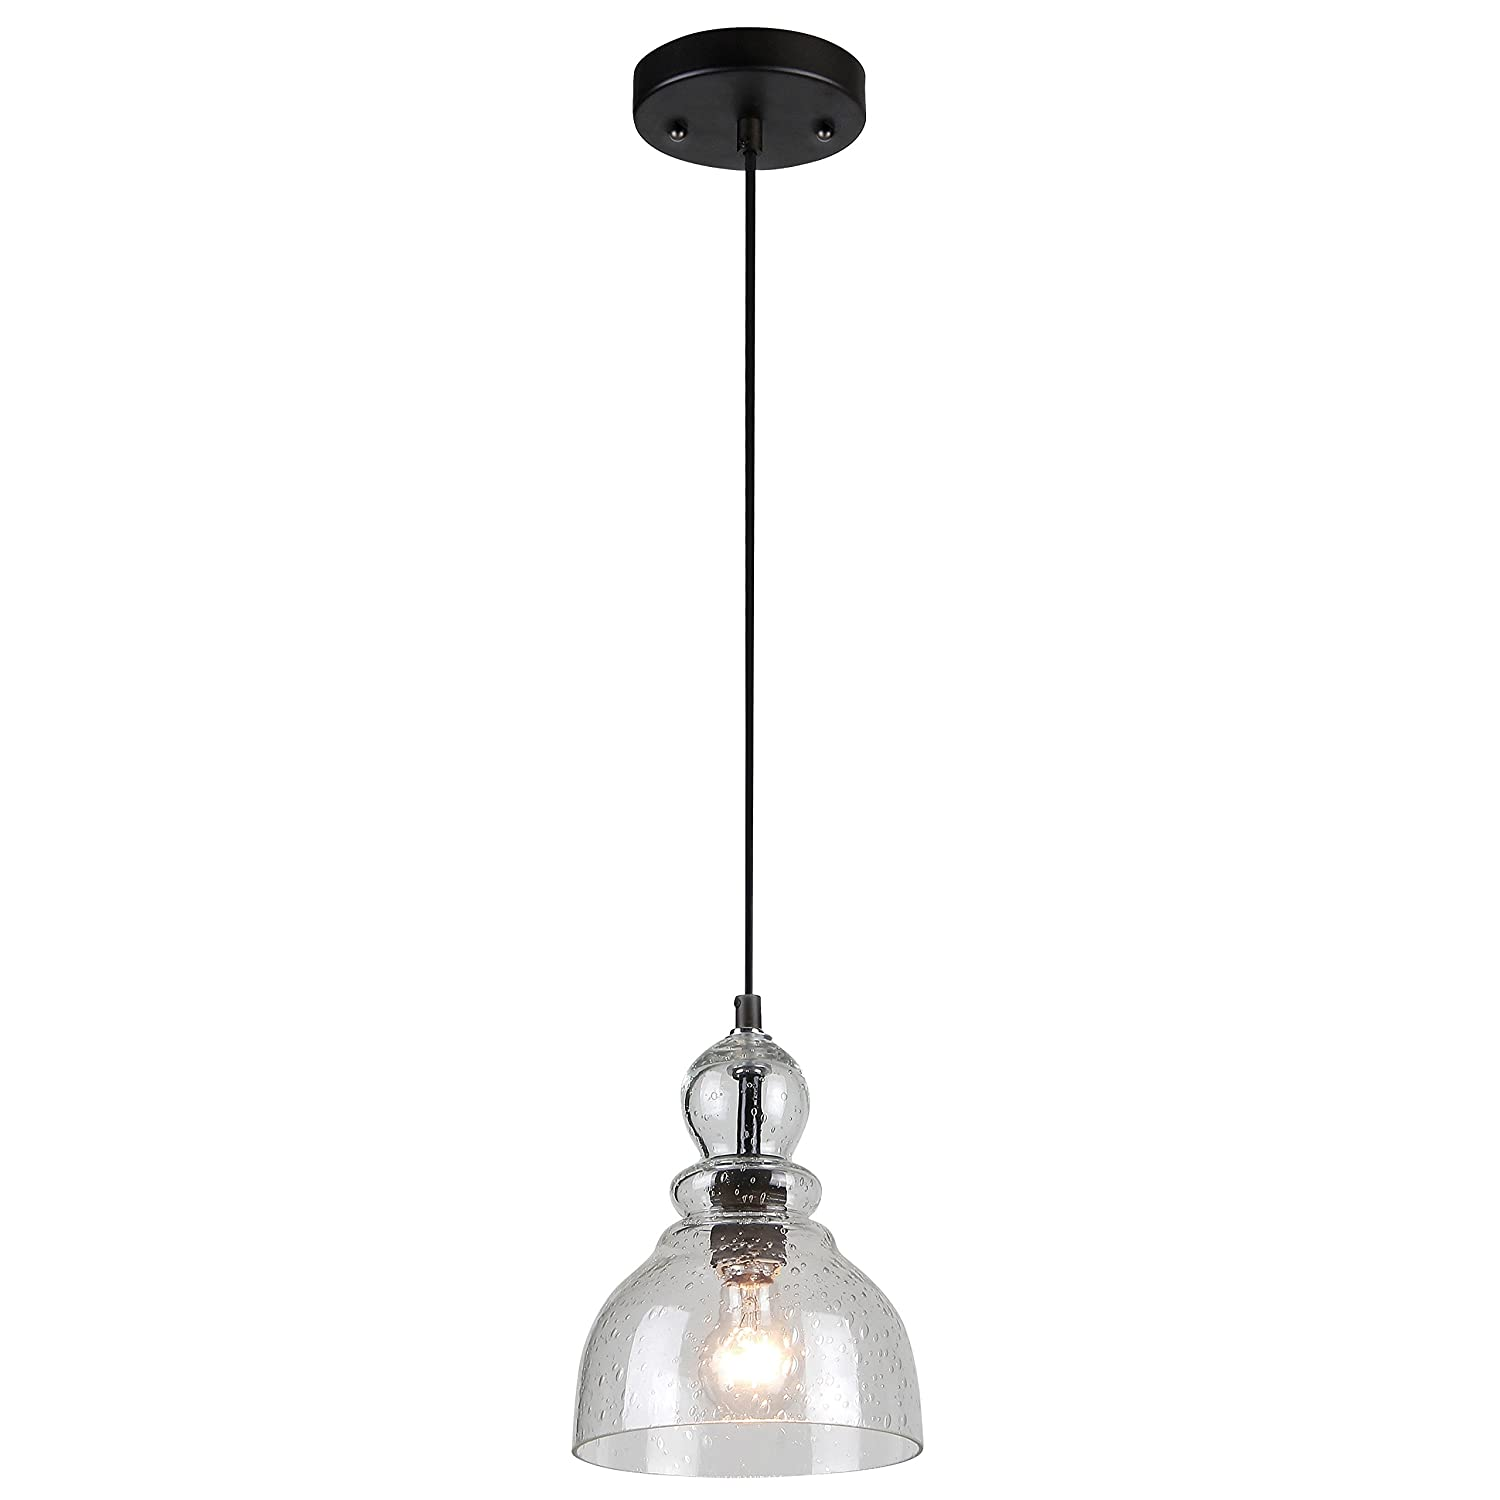 Industrial Pendant Lighting For Kitchen Pendant Light Fixtures Amazoncom Lighting Ceiling Fans